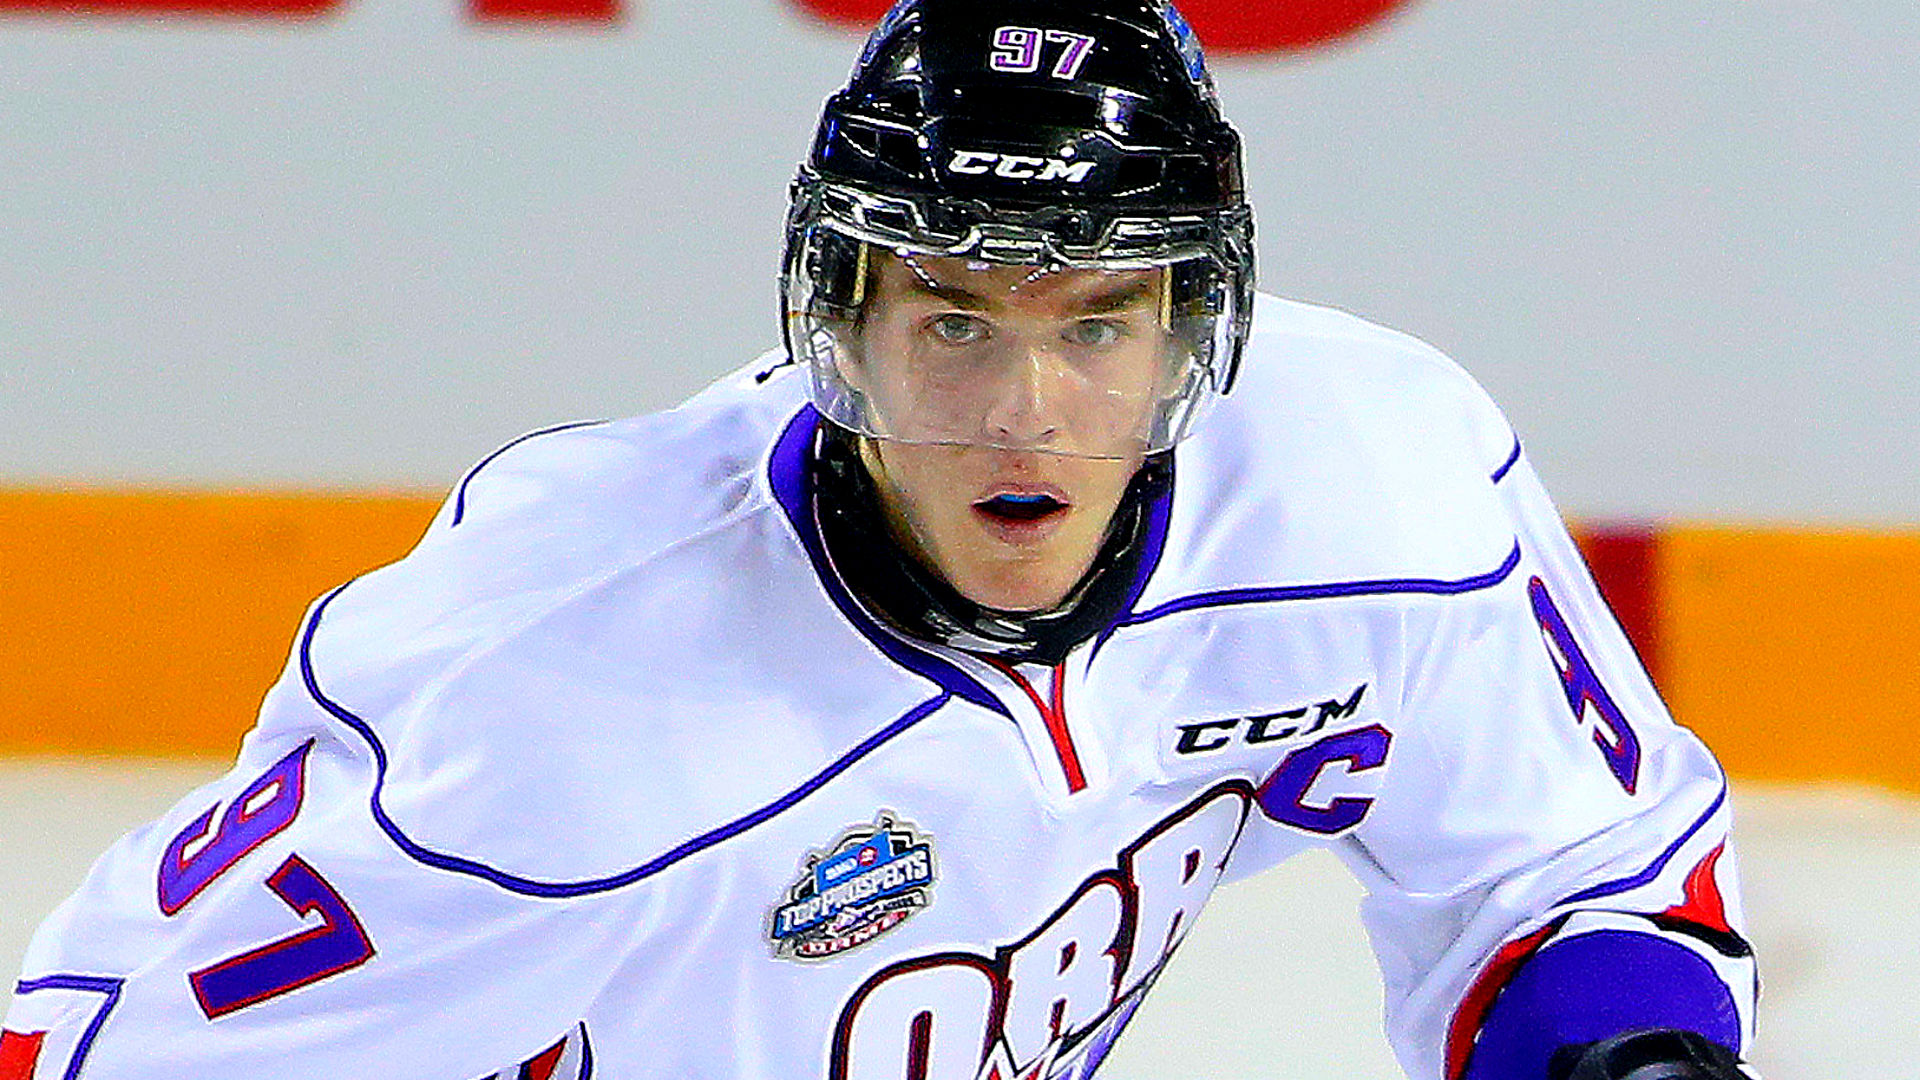 NHL Draft Lottery: The bright side for Connor McDavid as an Oiler